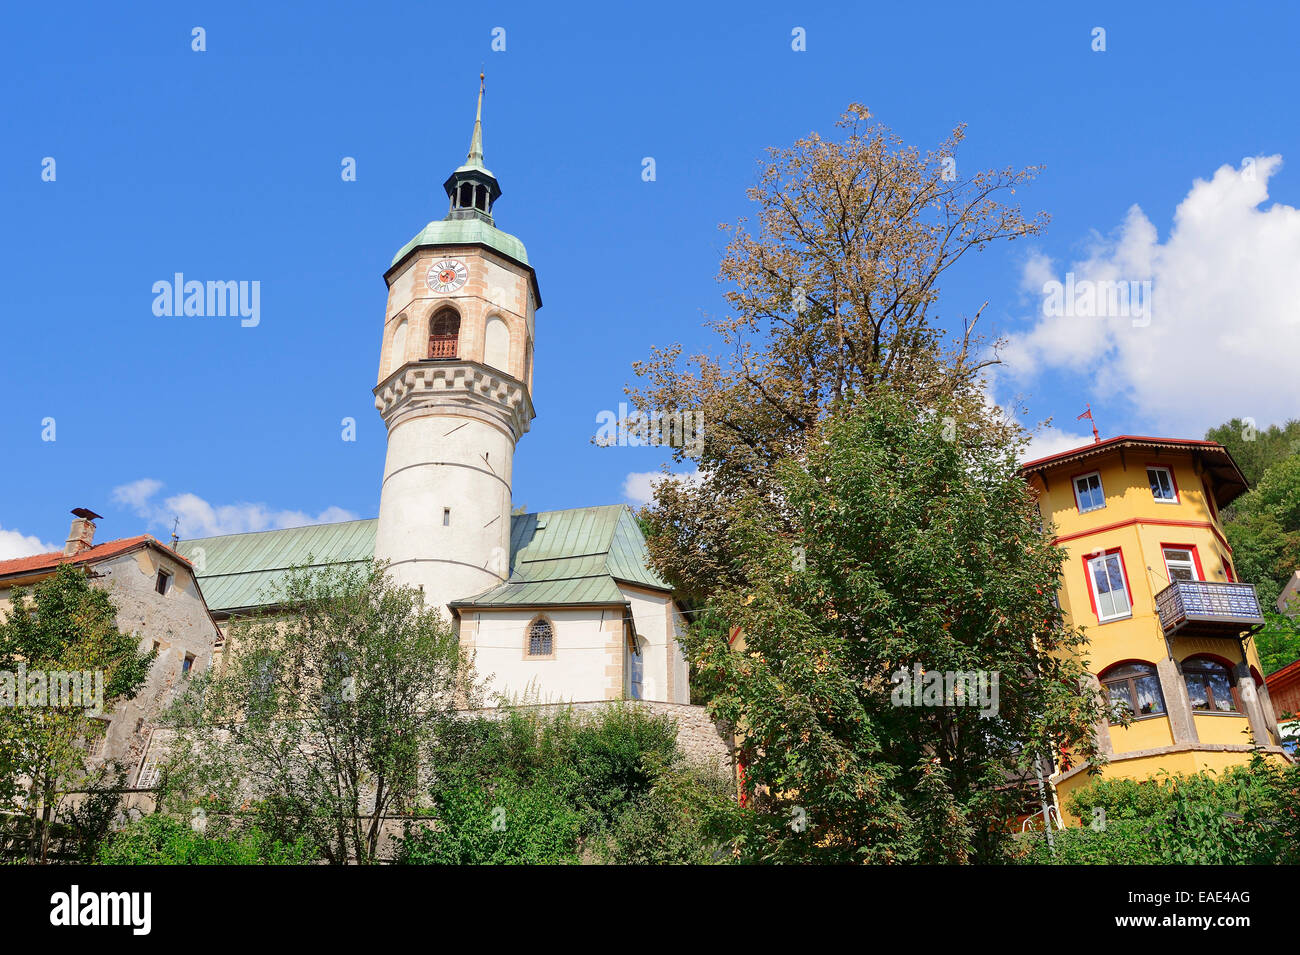 Residential Tower of the Lords of Hoetting, Hötting, Innsbruck, Tyrol, Austria - Stock Image